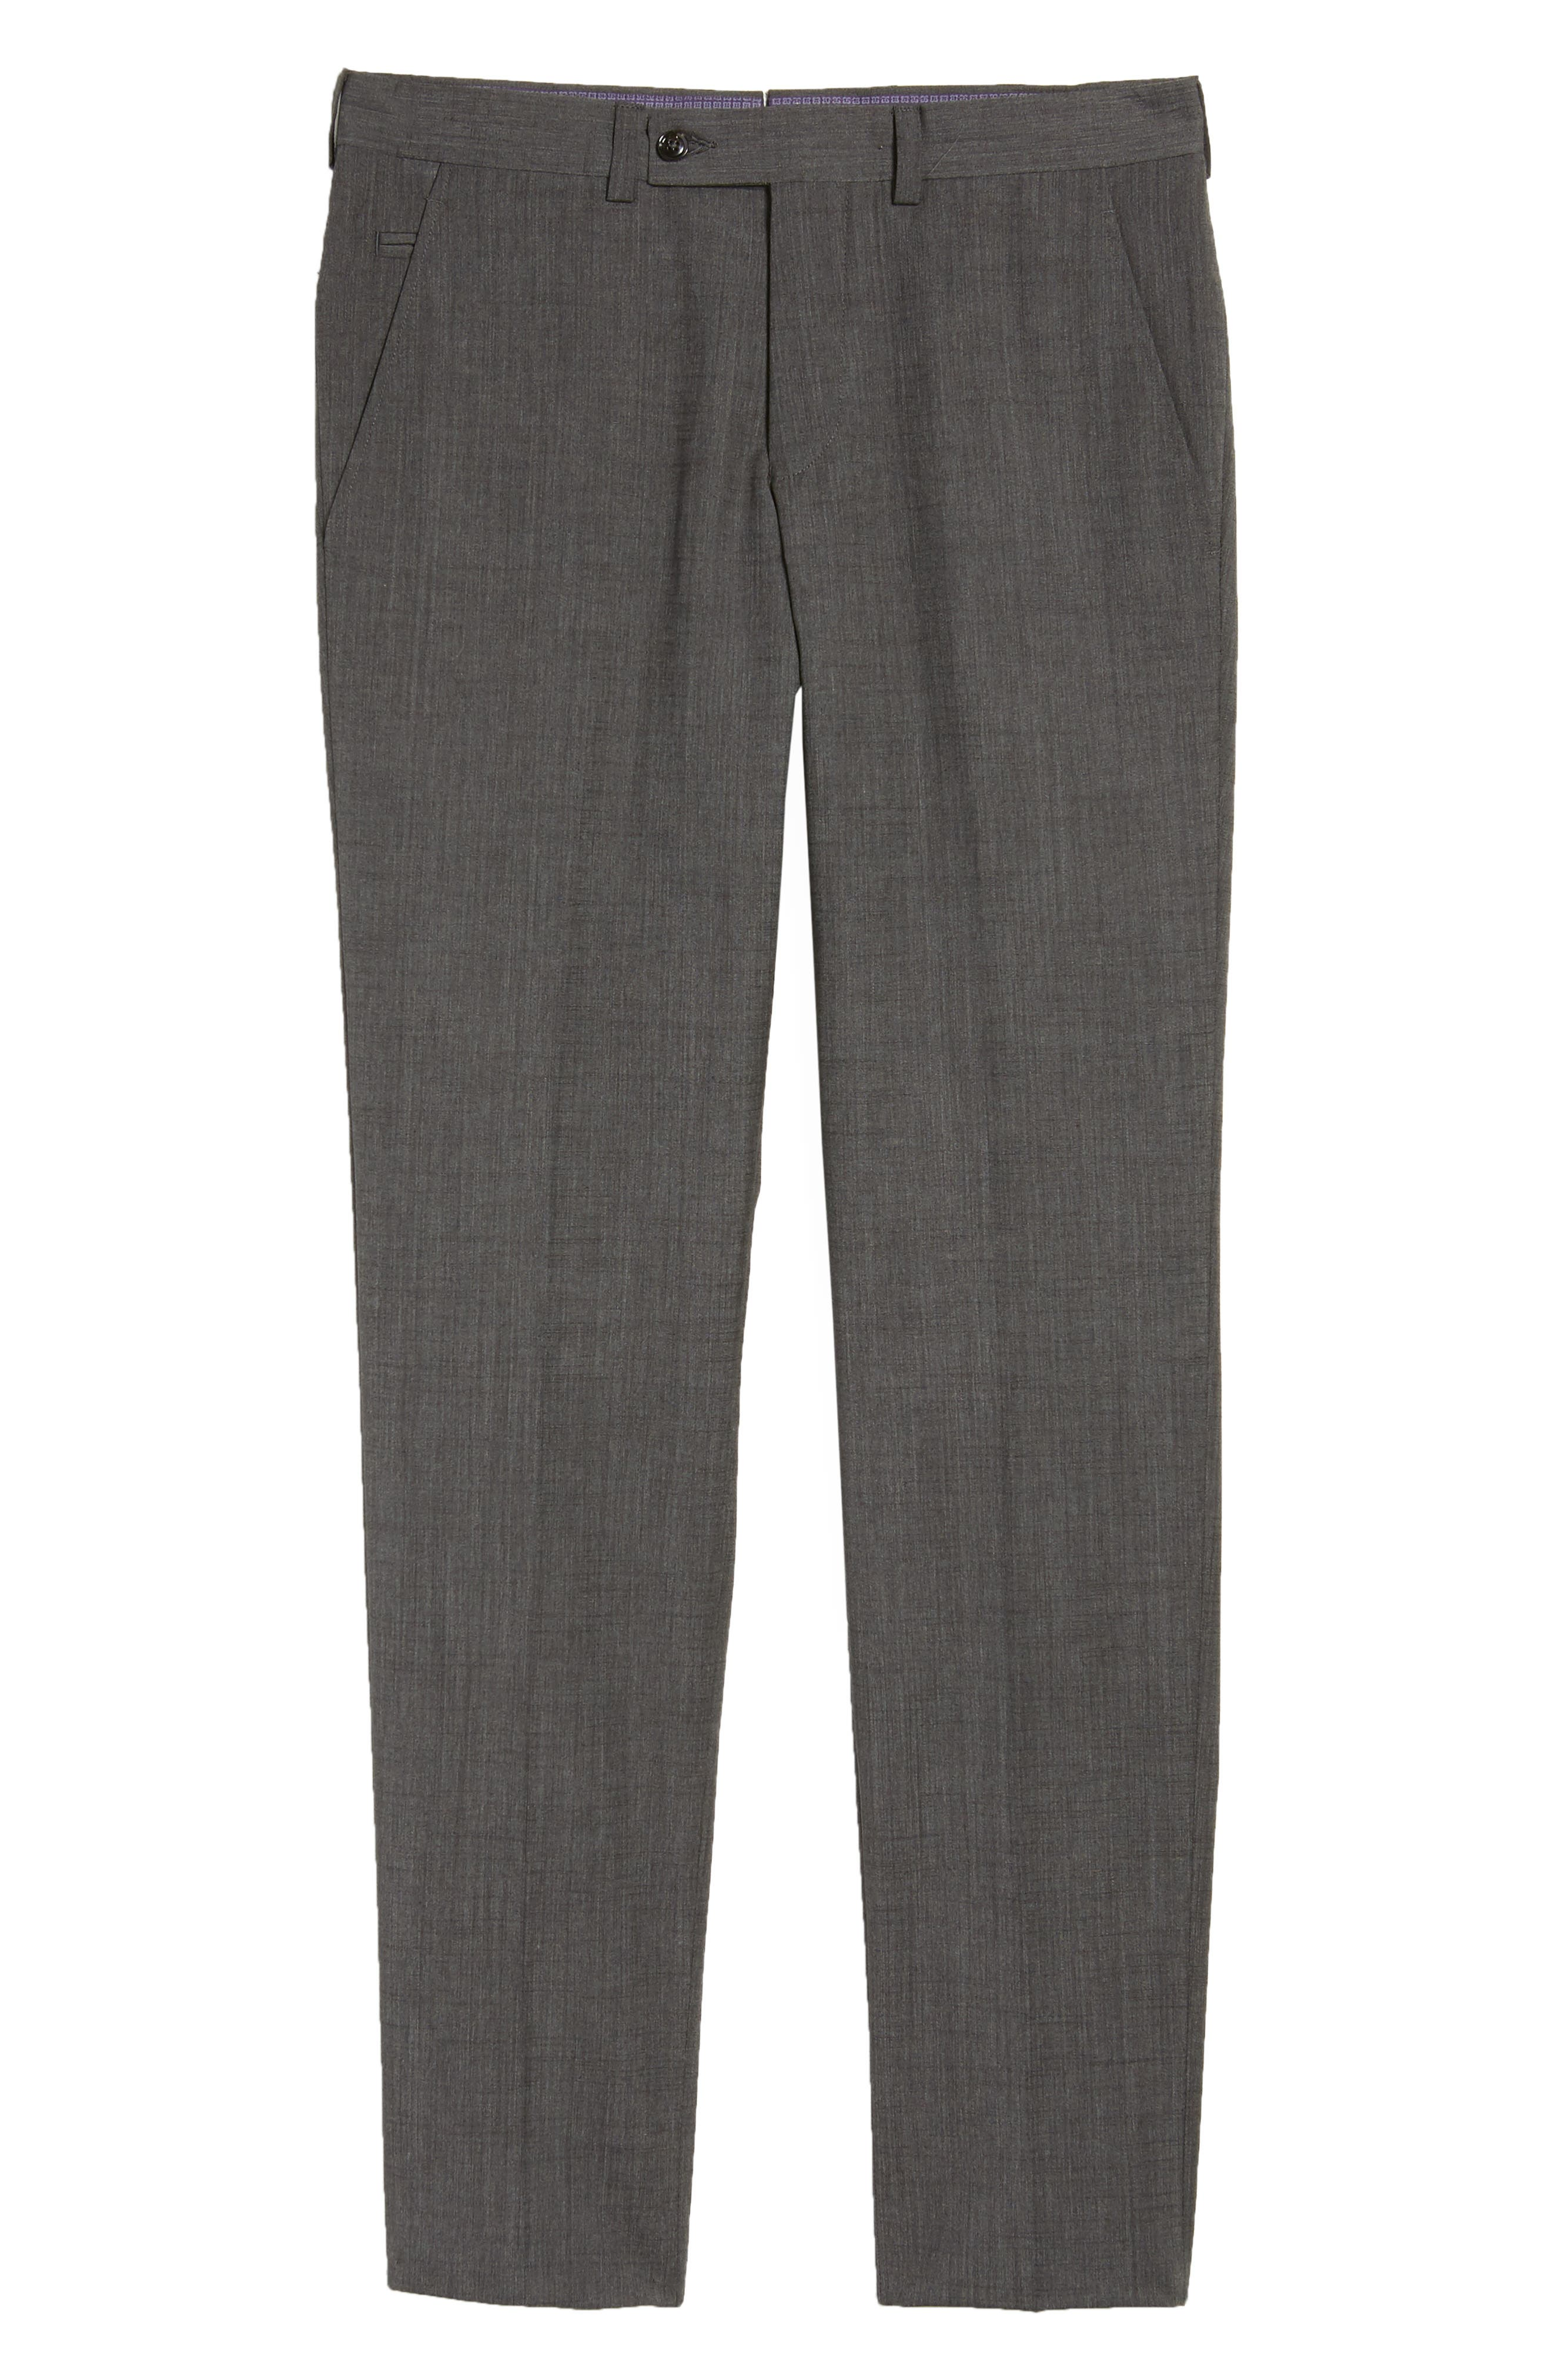 Jerome Flat Front Solid Wool & Cotton Trousers,                             Alternate thumbnail 6, color,                             Charcoal